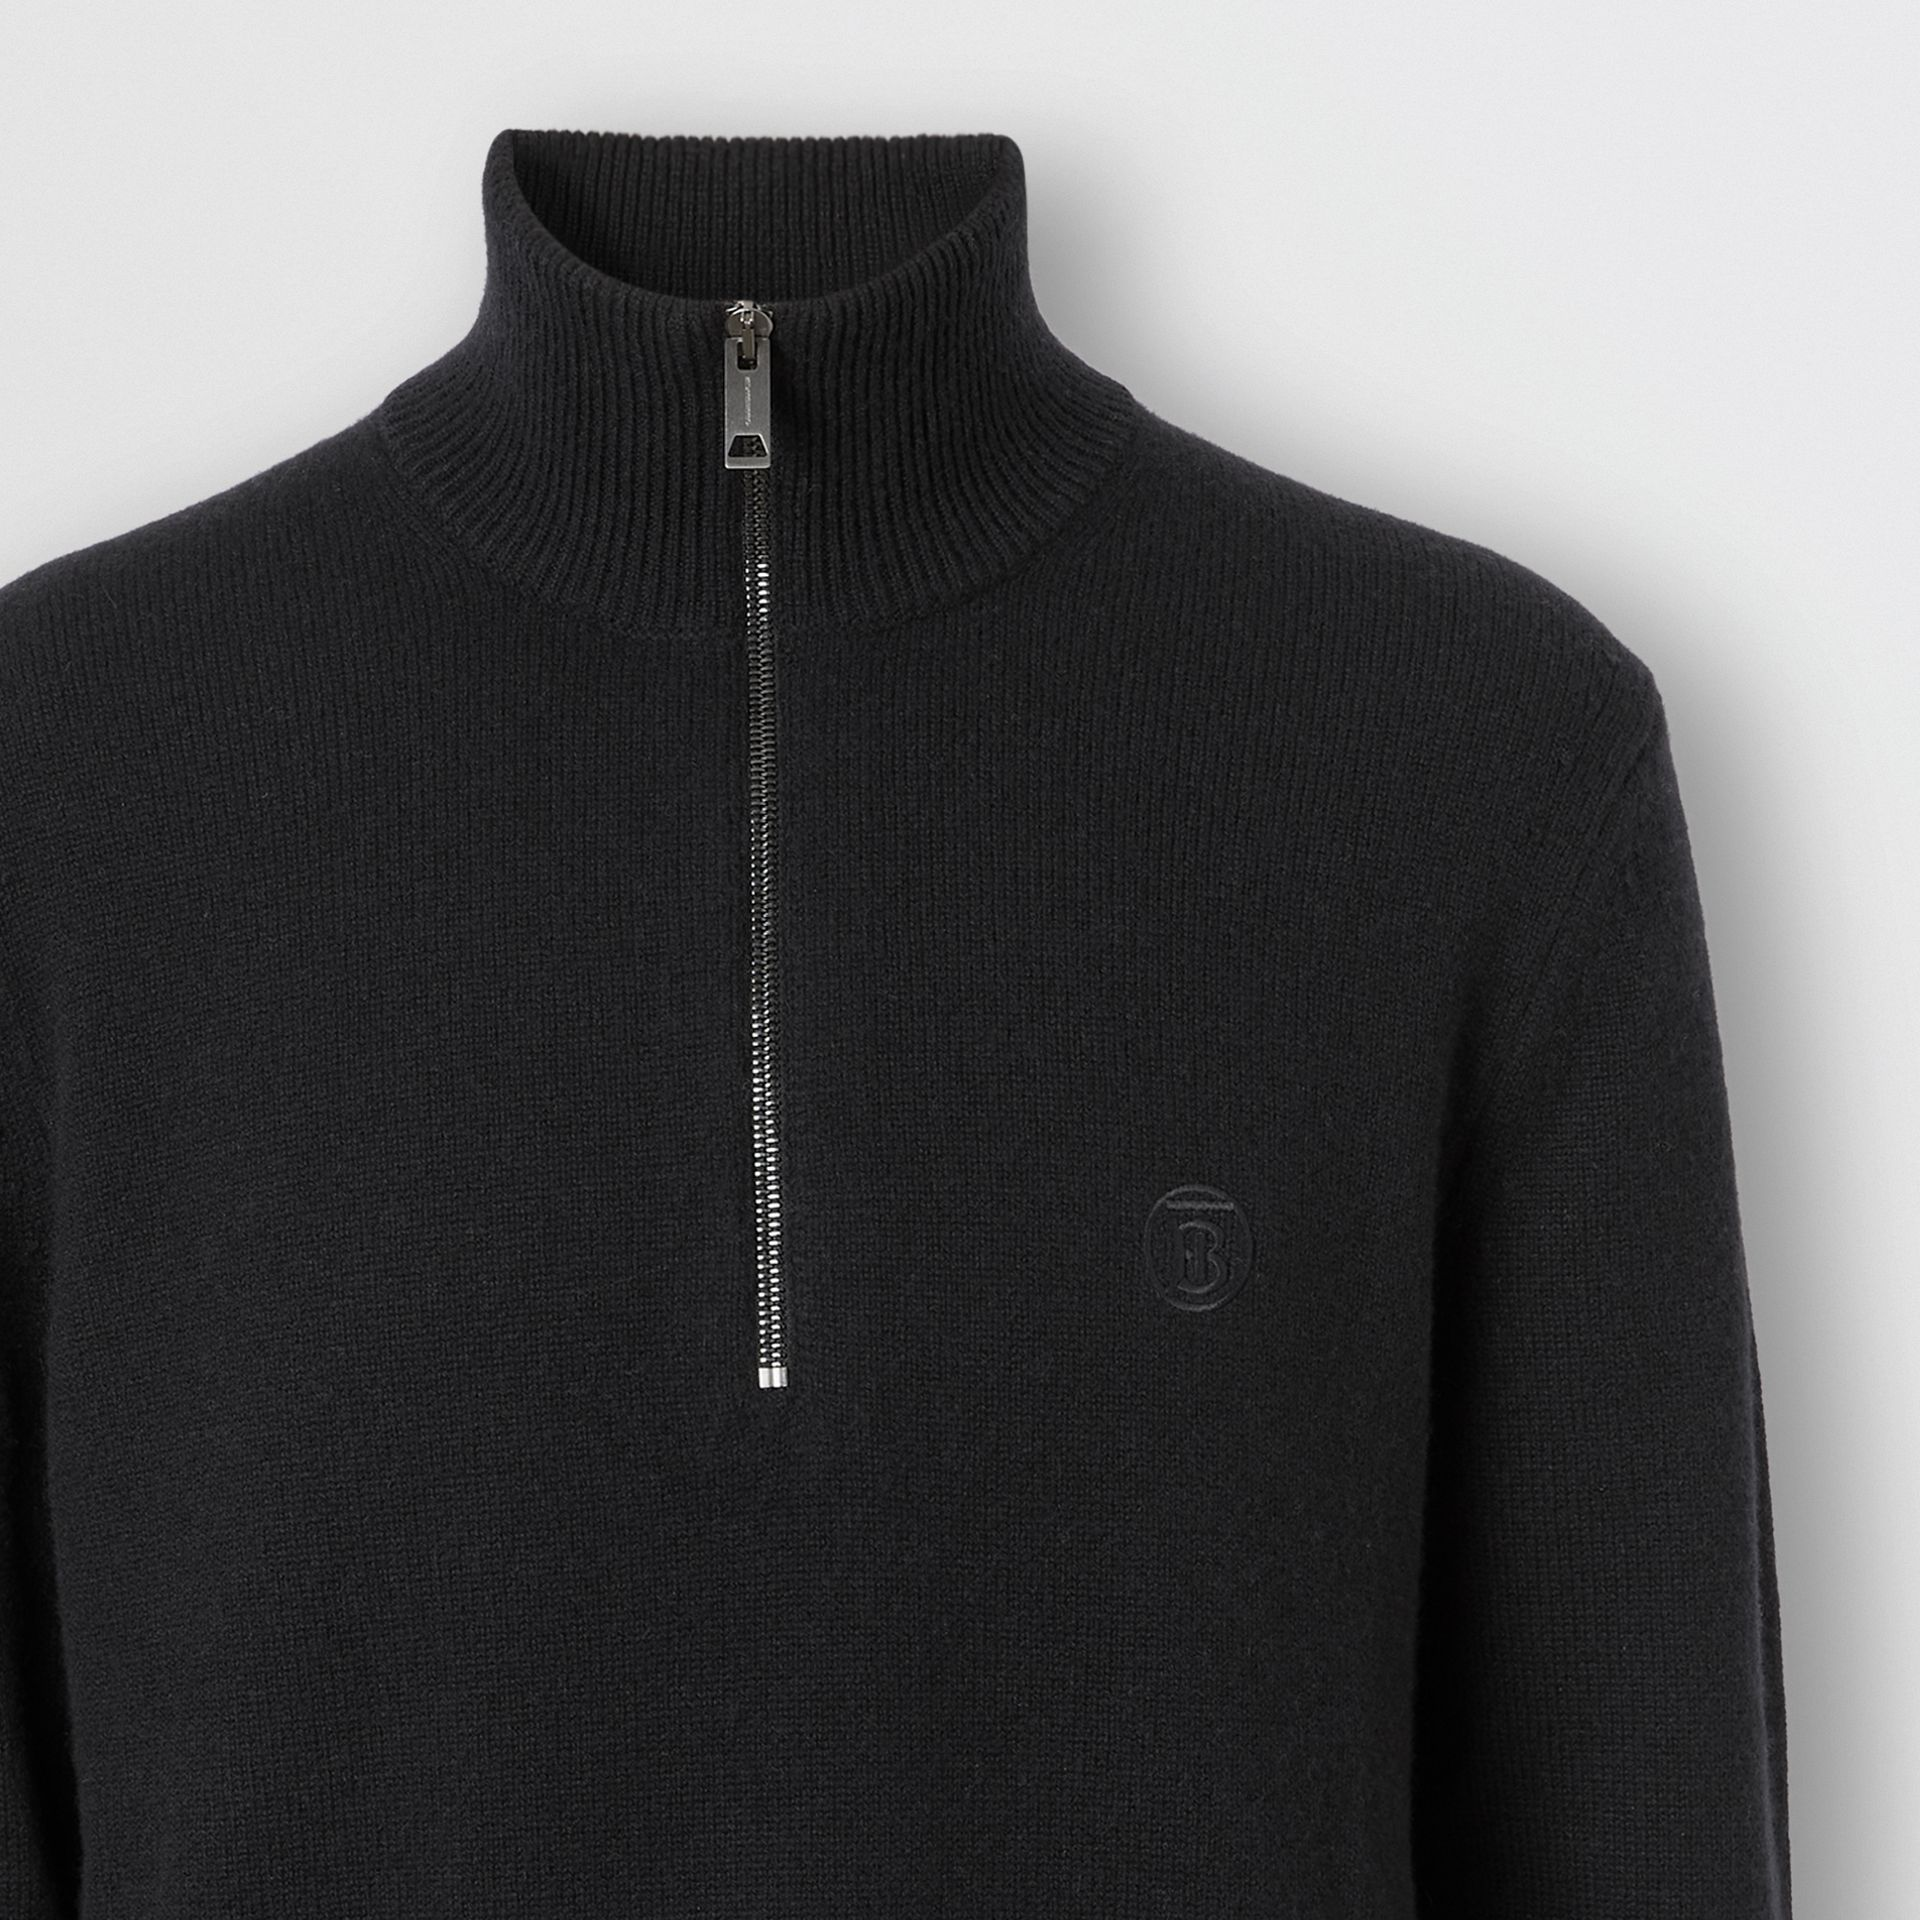 Monogram Motif Cashmere Funnel Neck Sweater in Black - Men | Burberry - gallery image 5